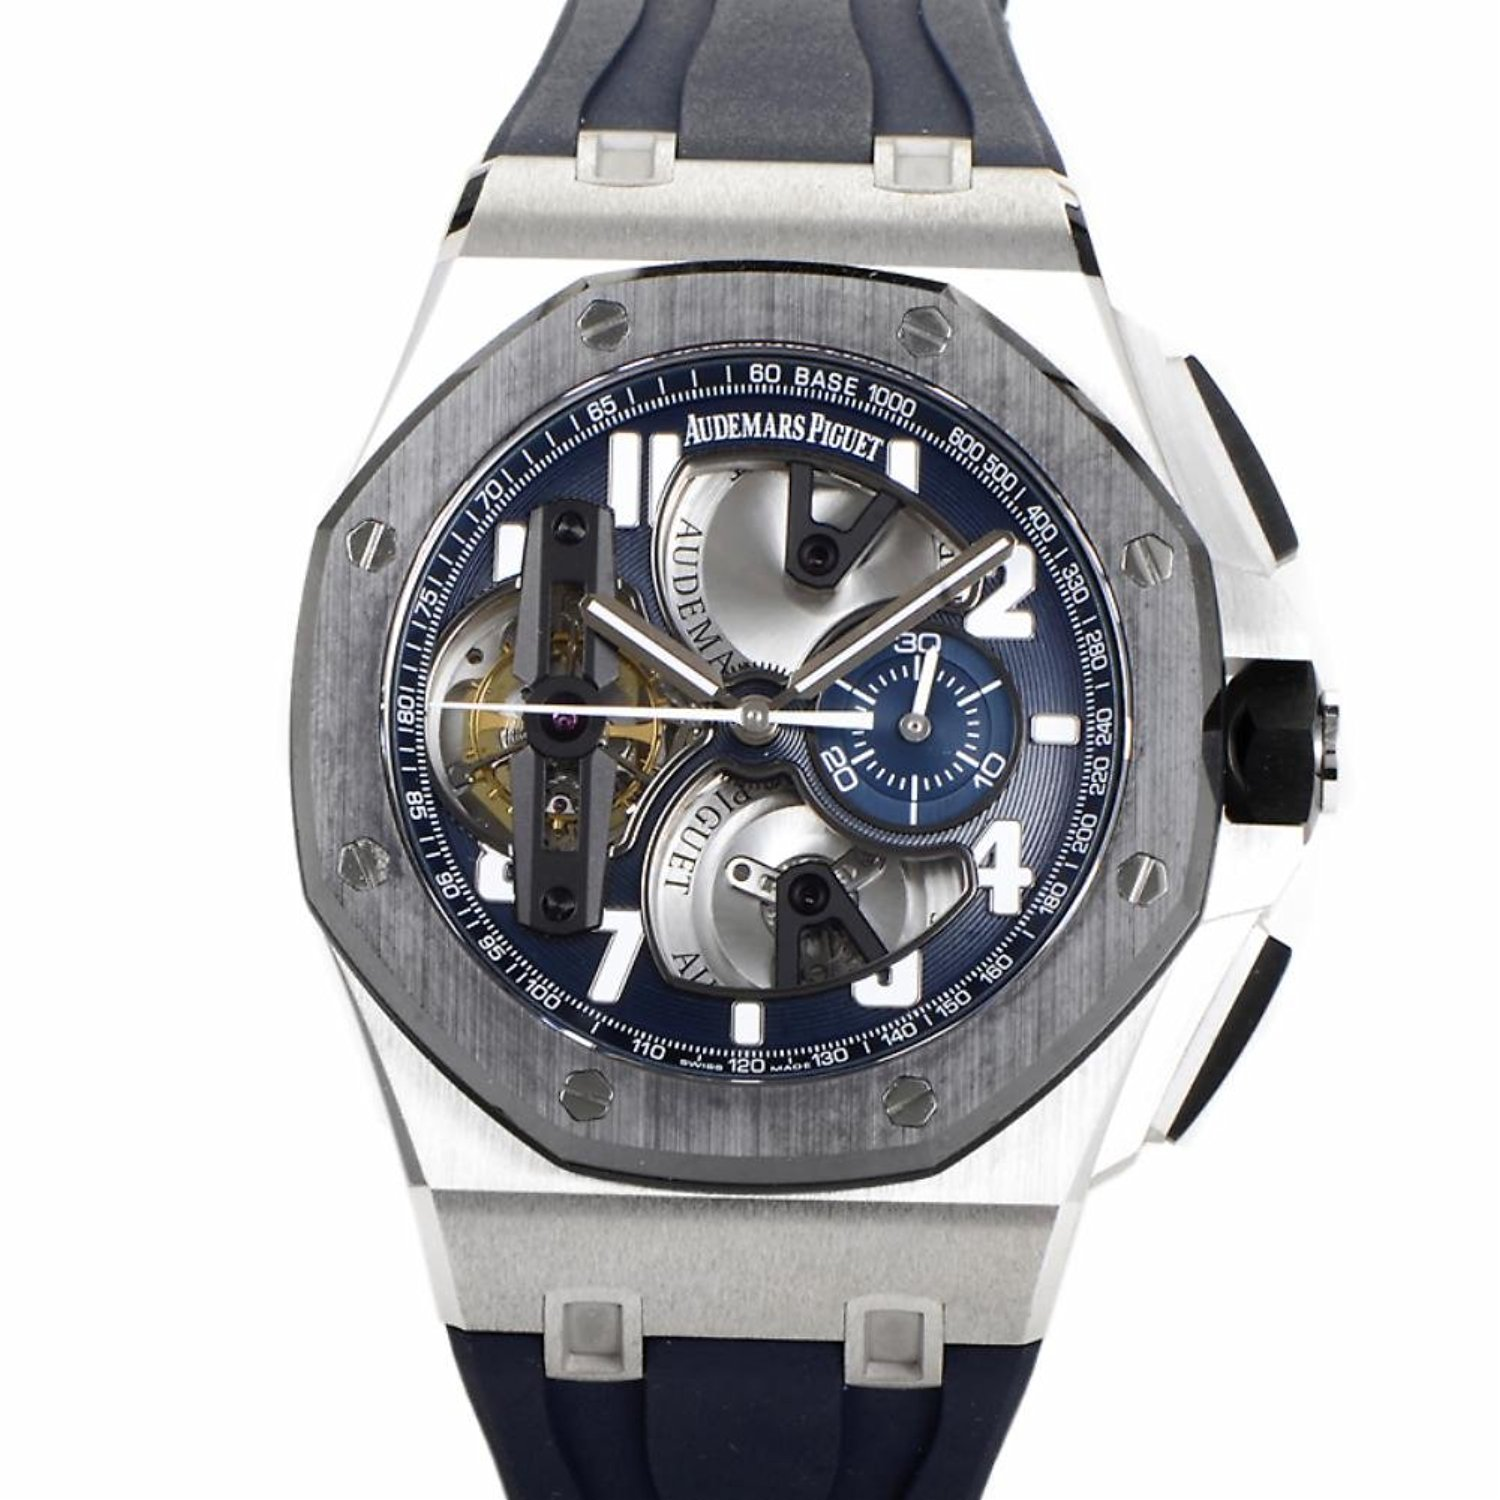 Audemars Piguet Royal Oak Offshore automatic-self-wind mens Watch (Certified Pre-owned)